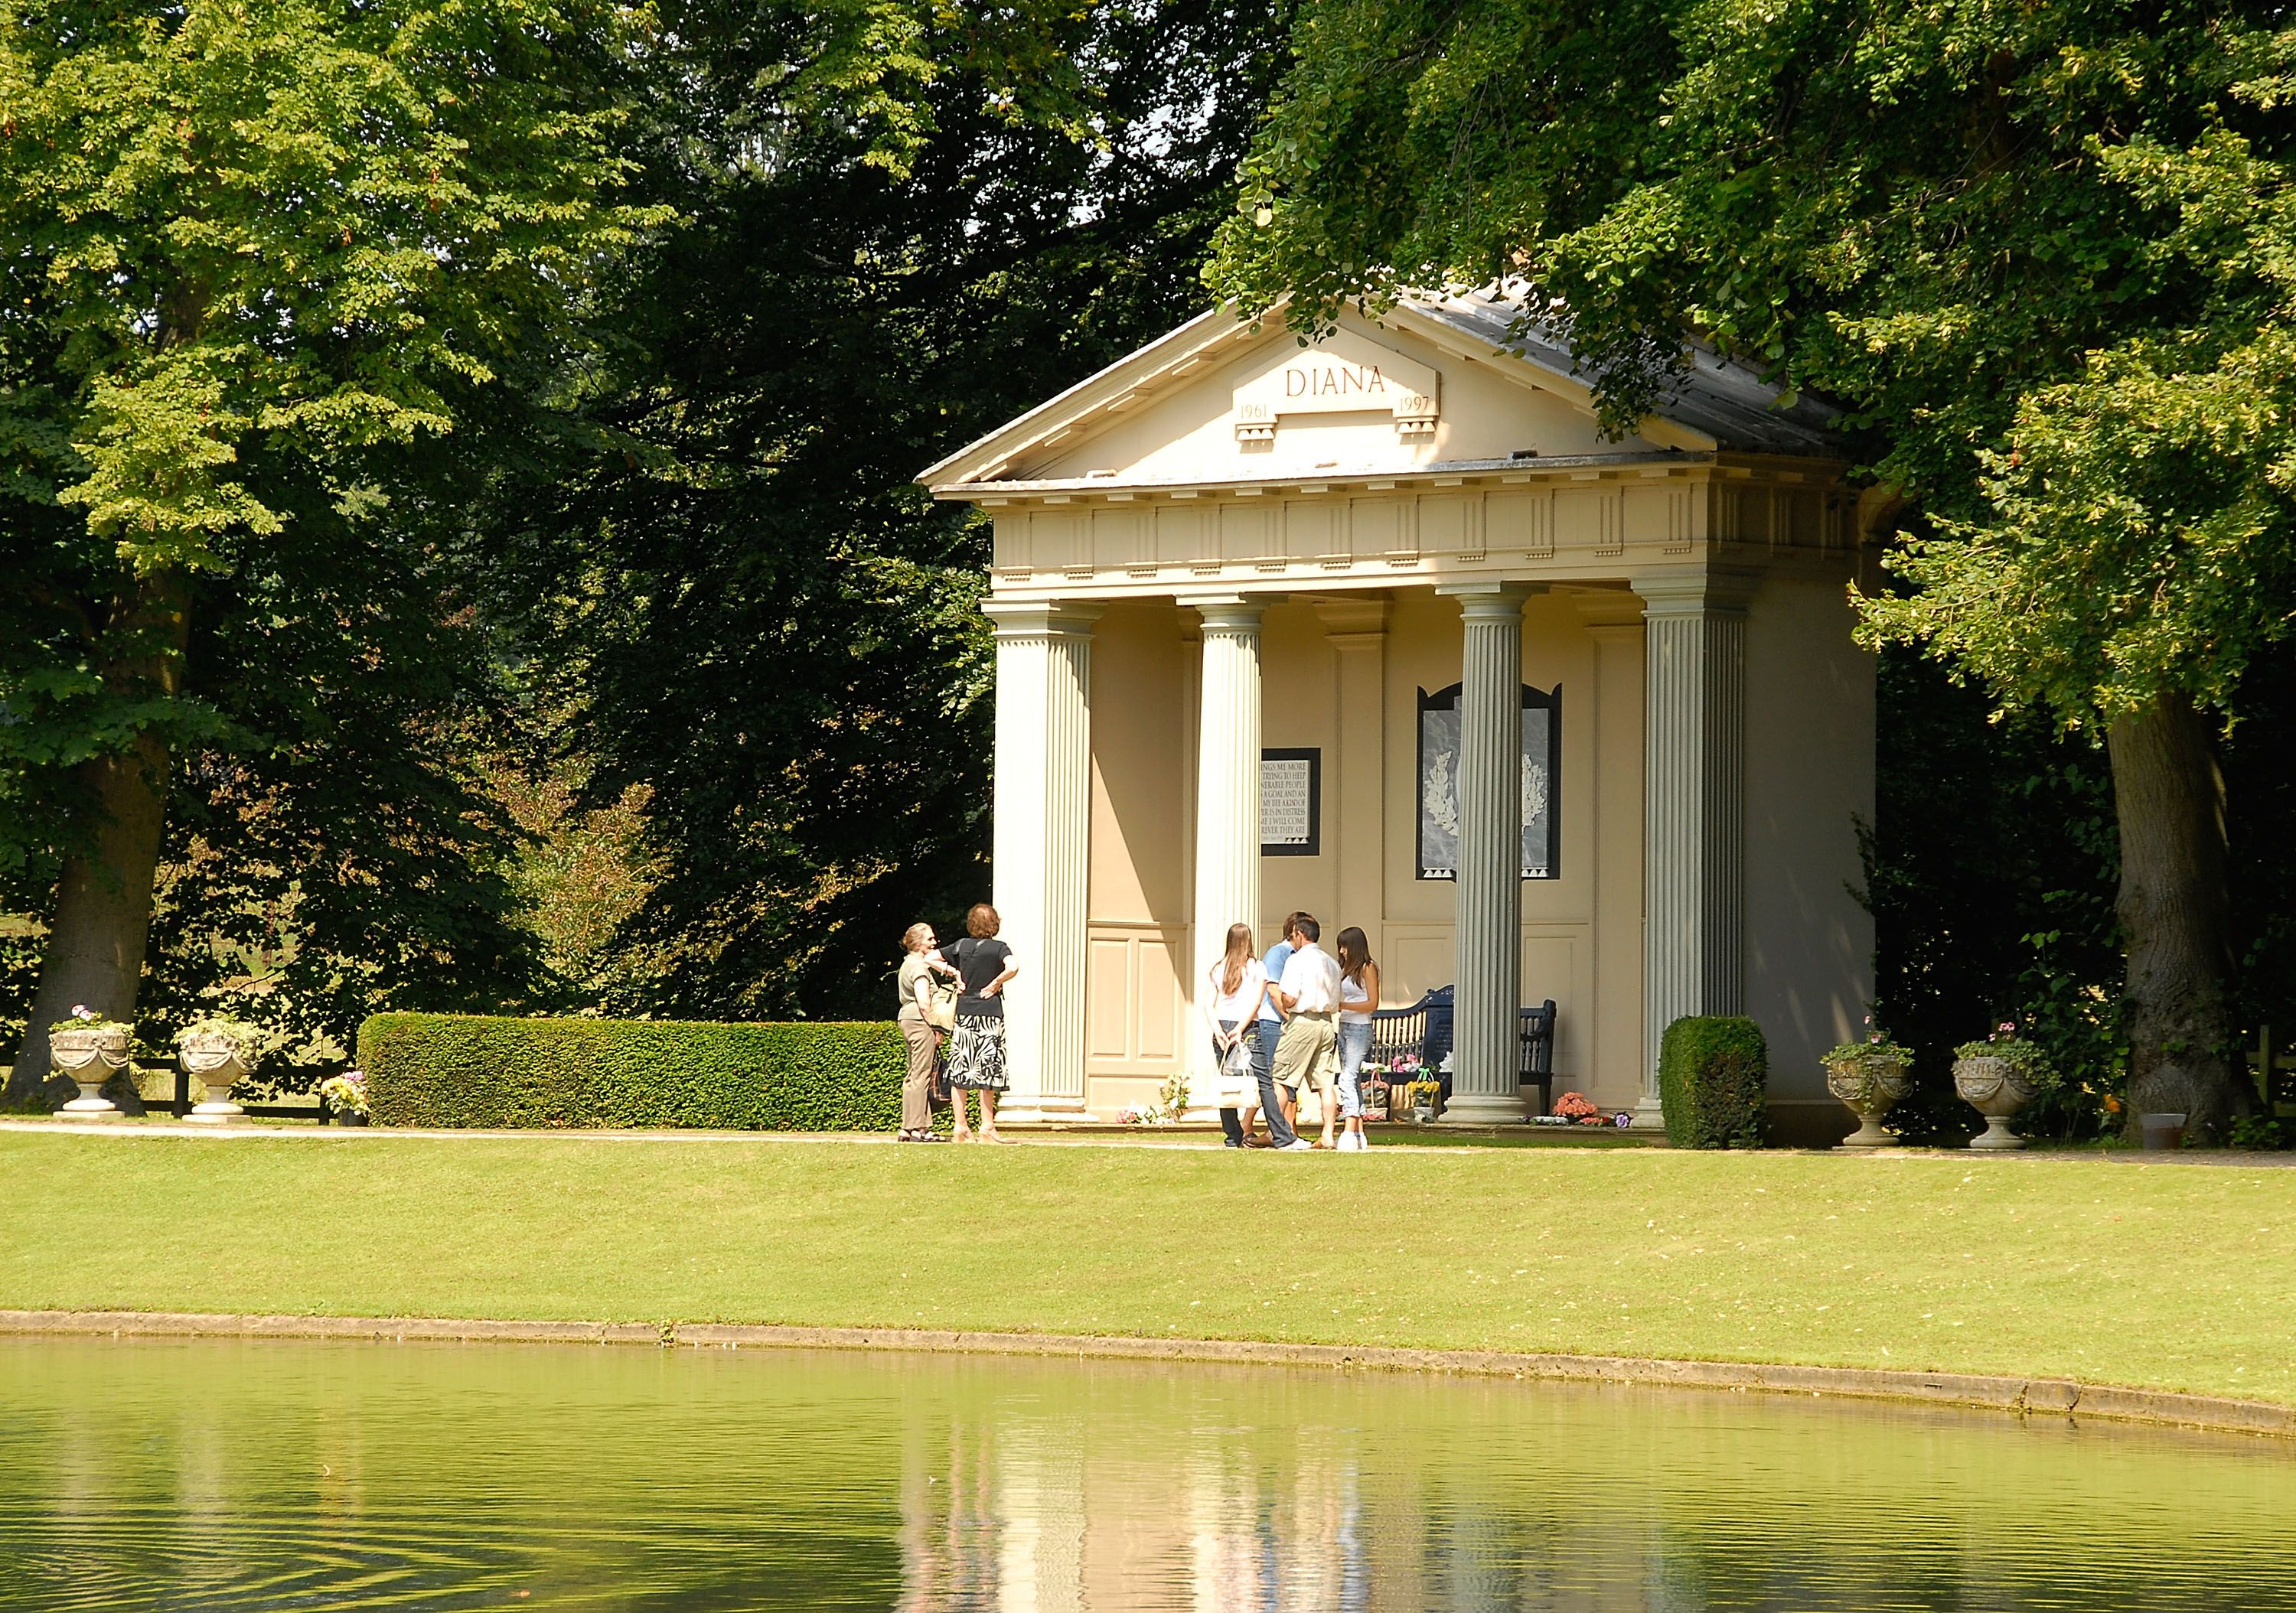 Temple Dedicated to Diana, Princess of Wales